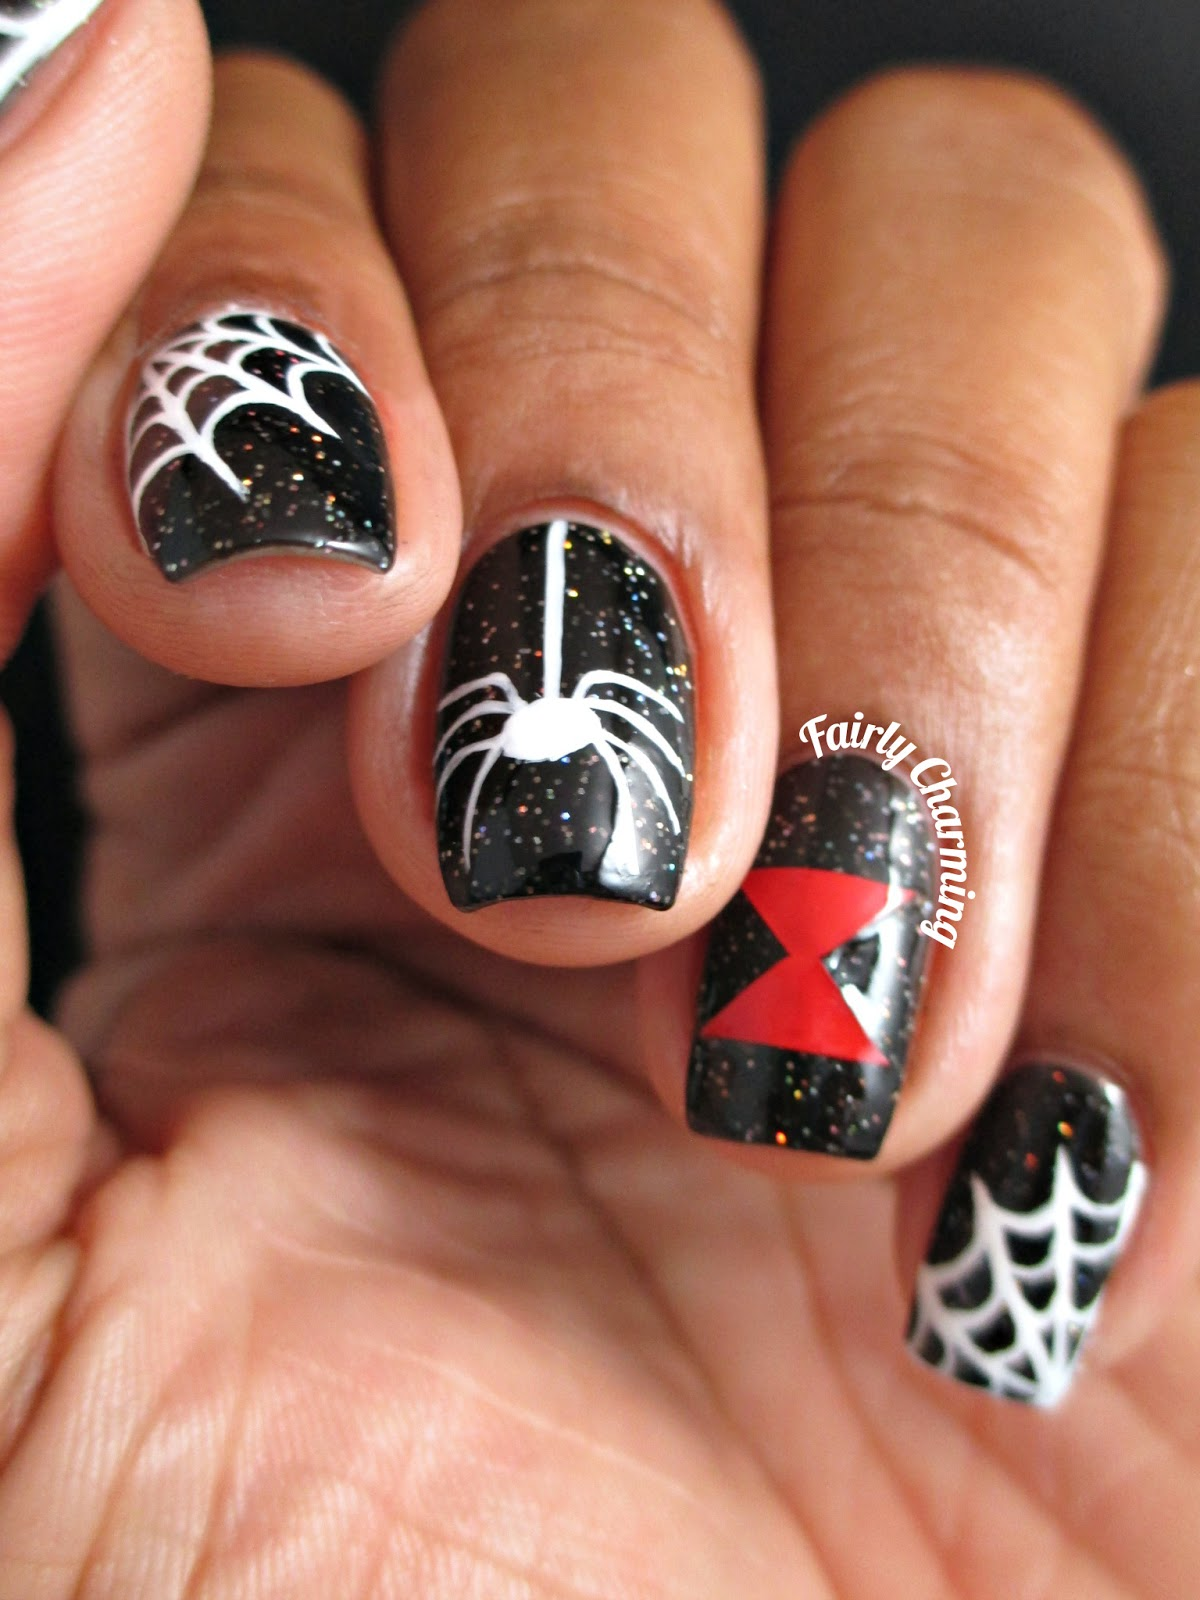 Colors Used Painted Polish Black Widow Baby And Acrylic Paint